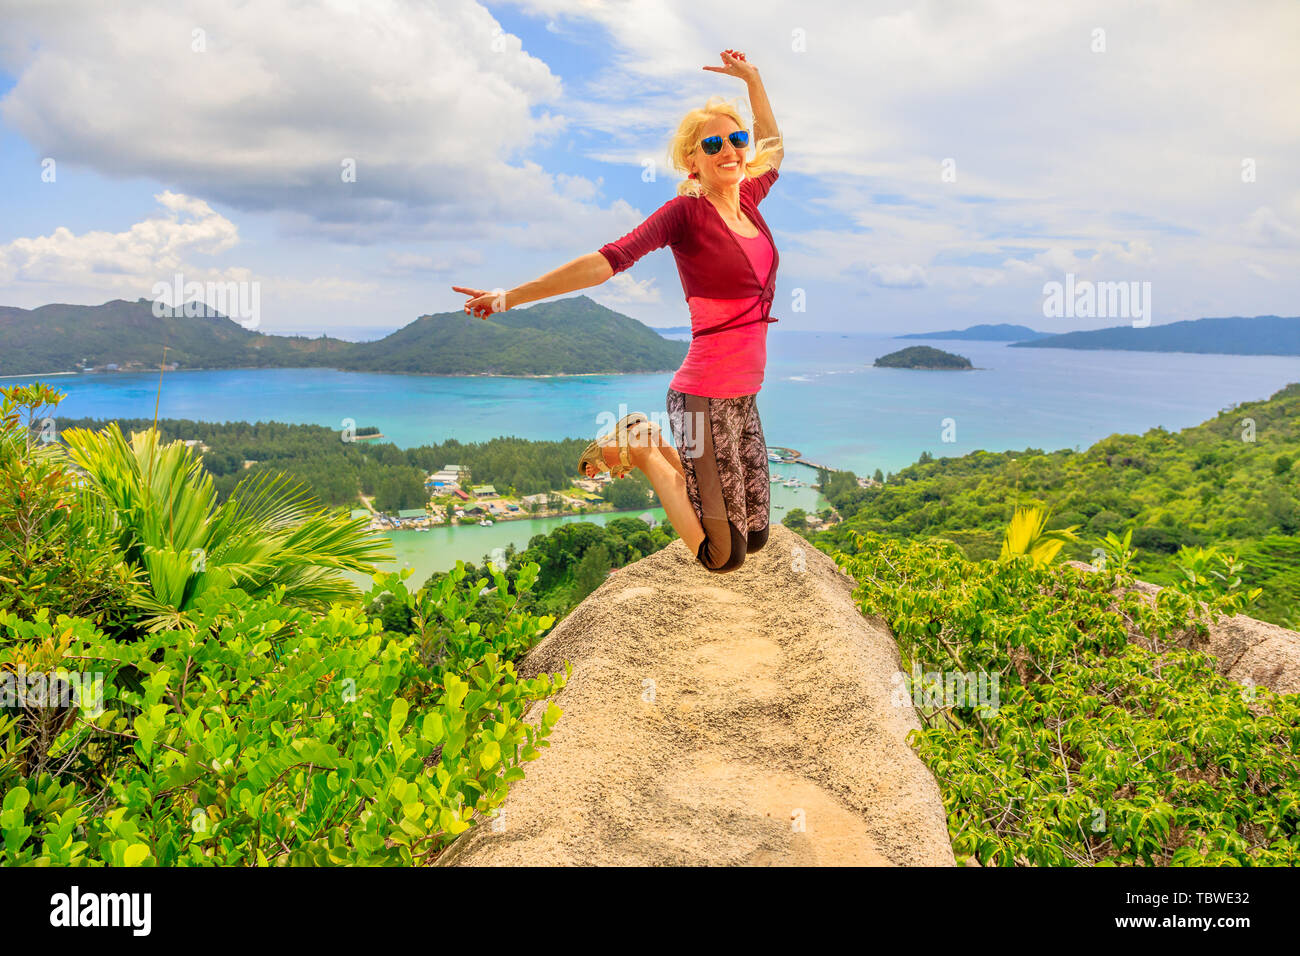 Praslin, Seychelles freedom woman jumping. Joyful happy tourist jumper at lookout of island after hiking inside Reserve of Fond Ferdinand. Scenic top - Stock Image